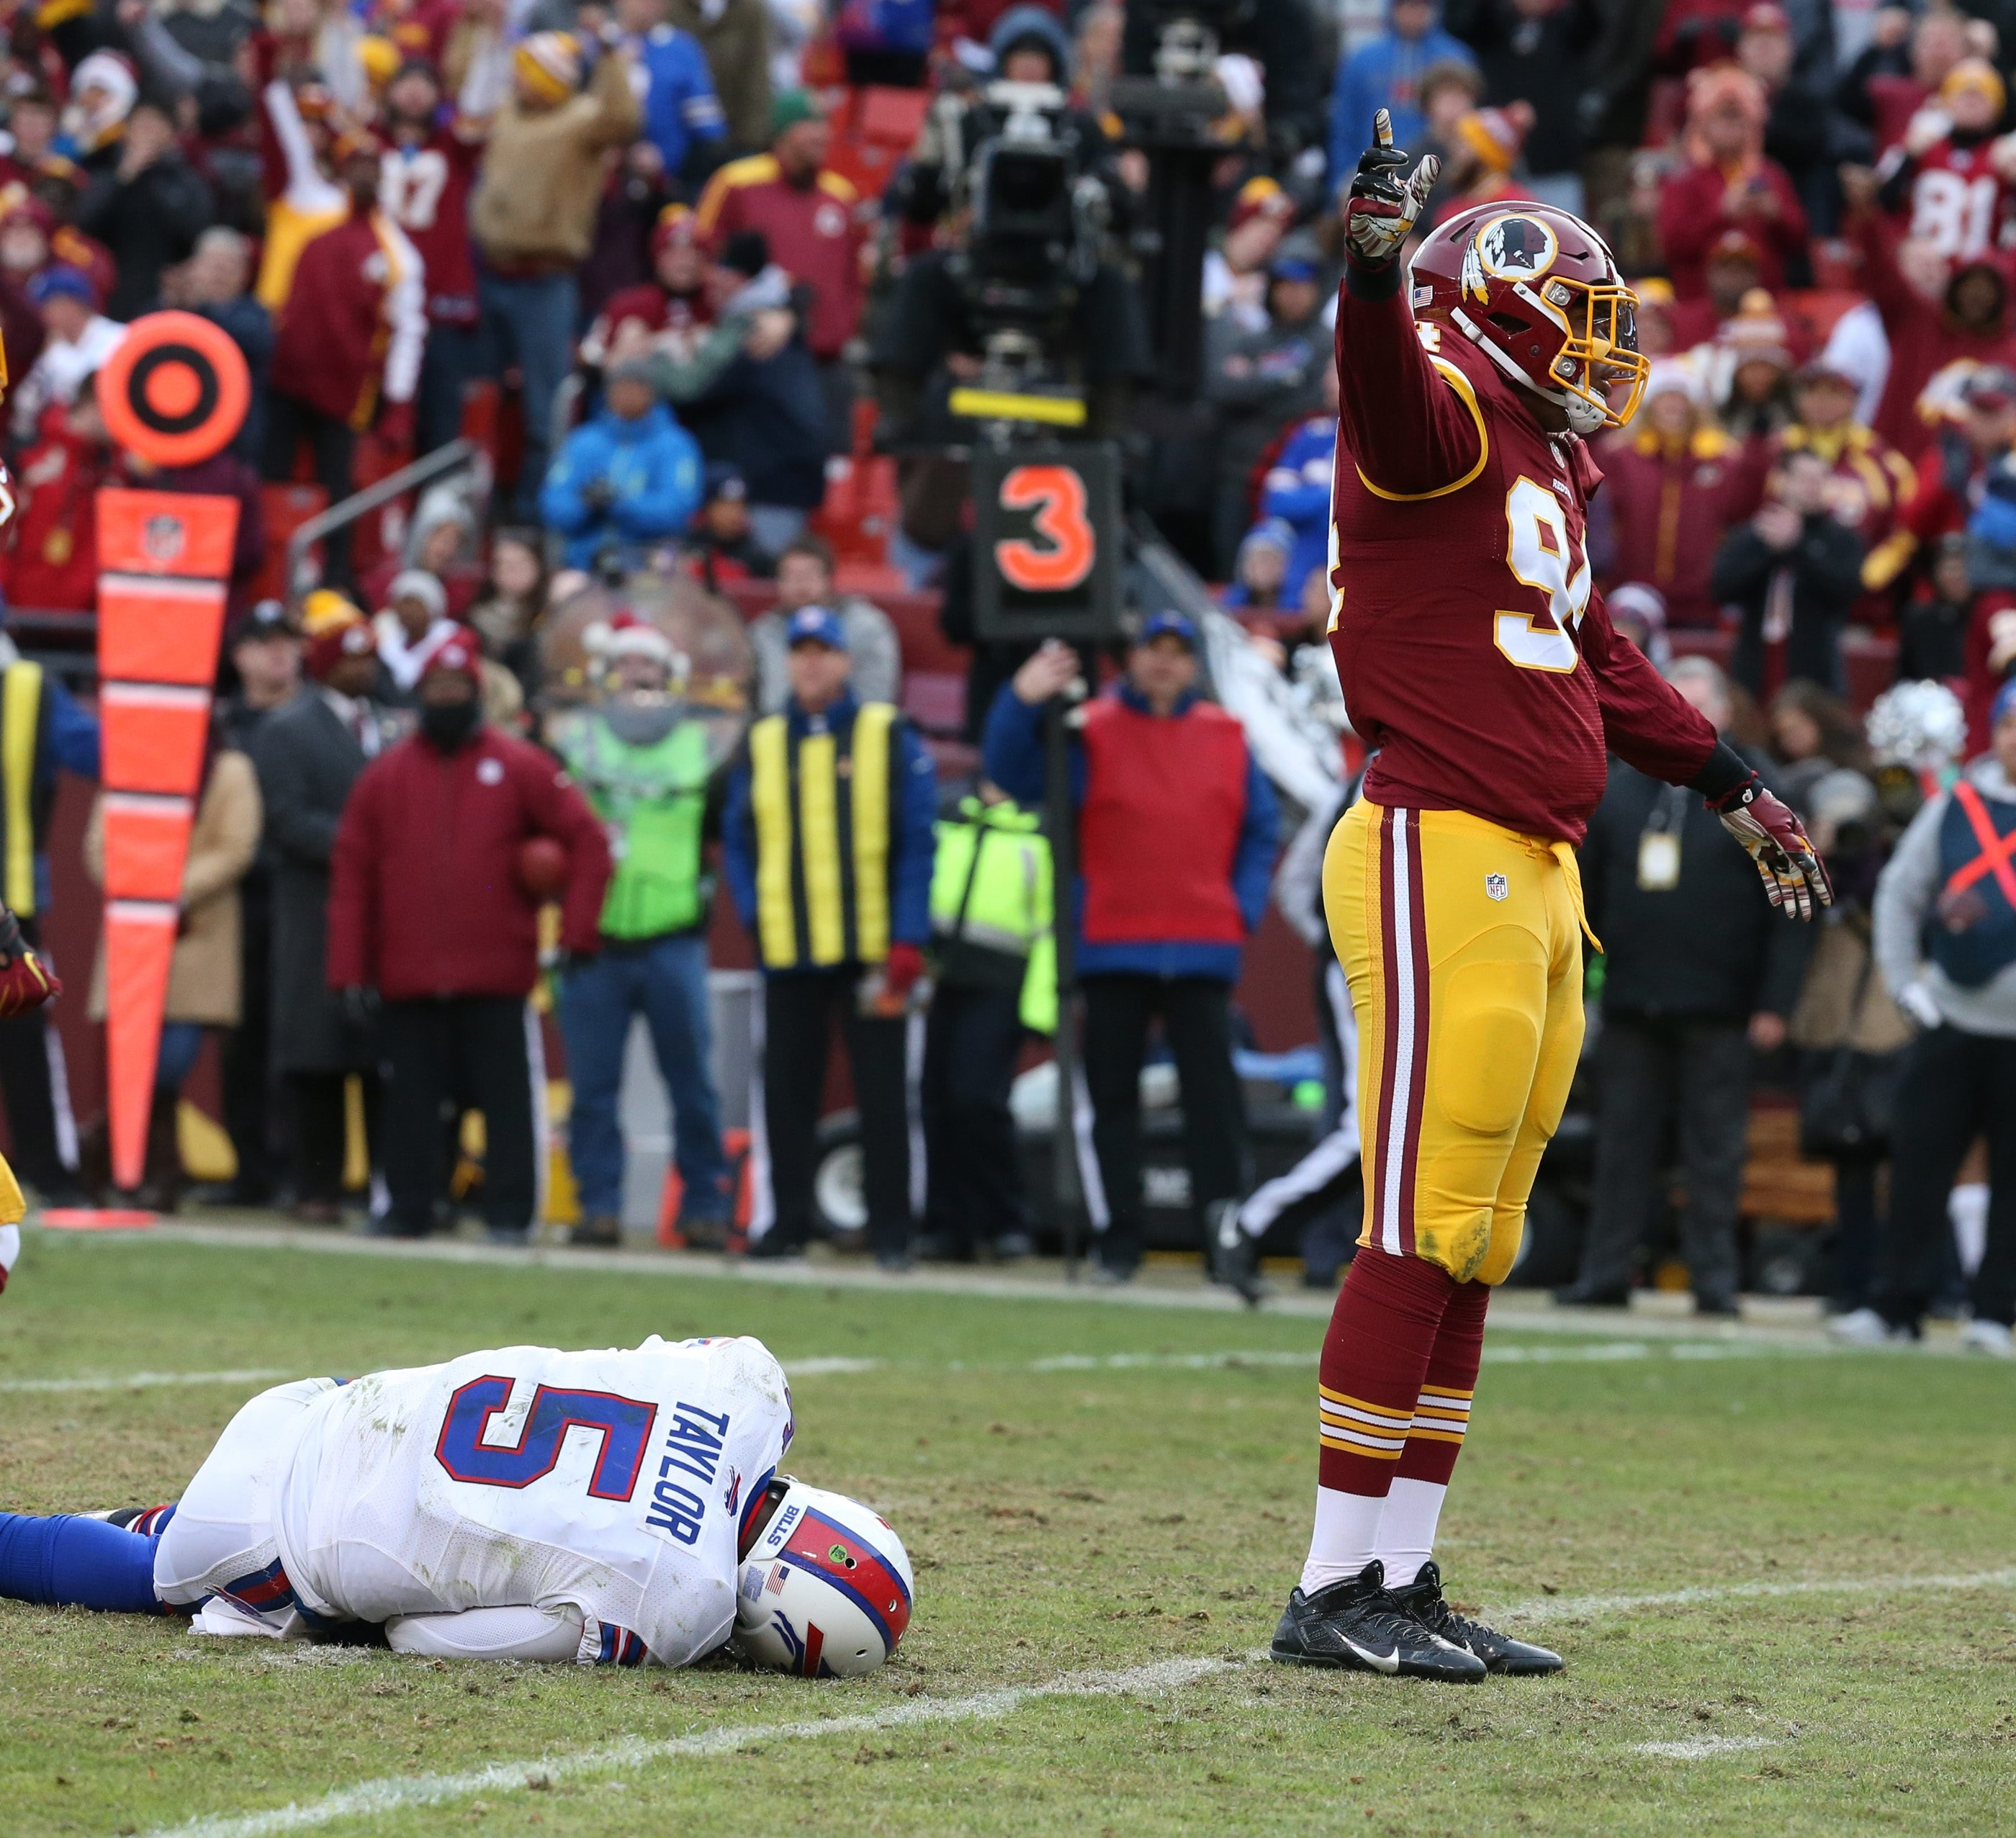 Bills quarterback Tyrod Taylor lies on the turf at FedEx Field after being sacked by Redskins linebacker Preston Smith during the fourth quarter.